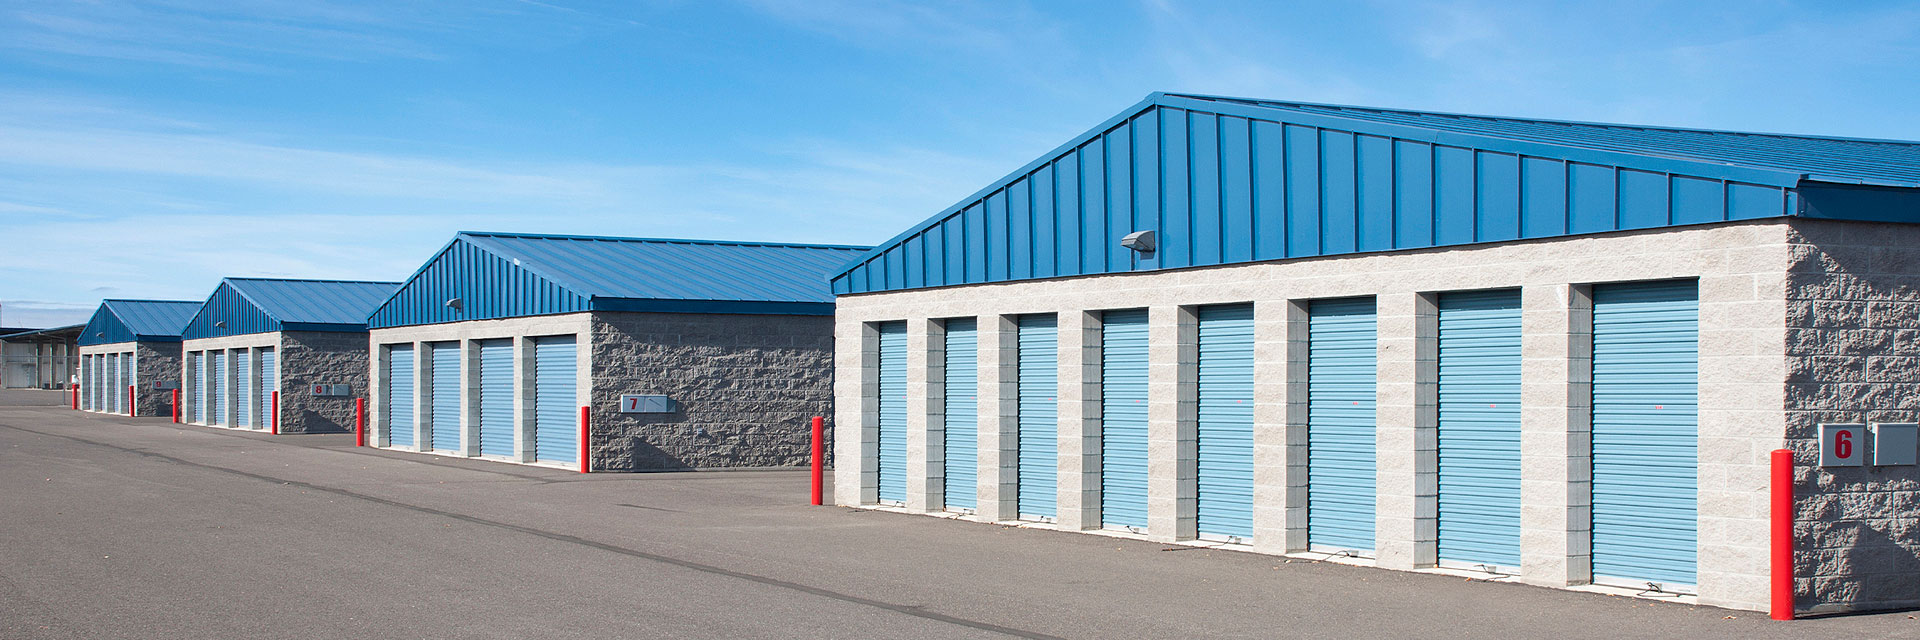 Self Storage Unit Buildings For Sale